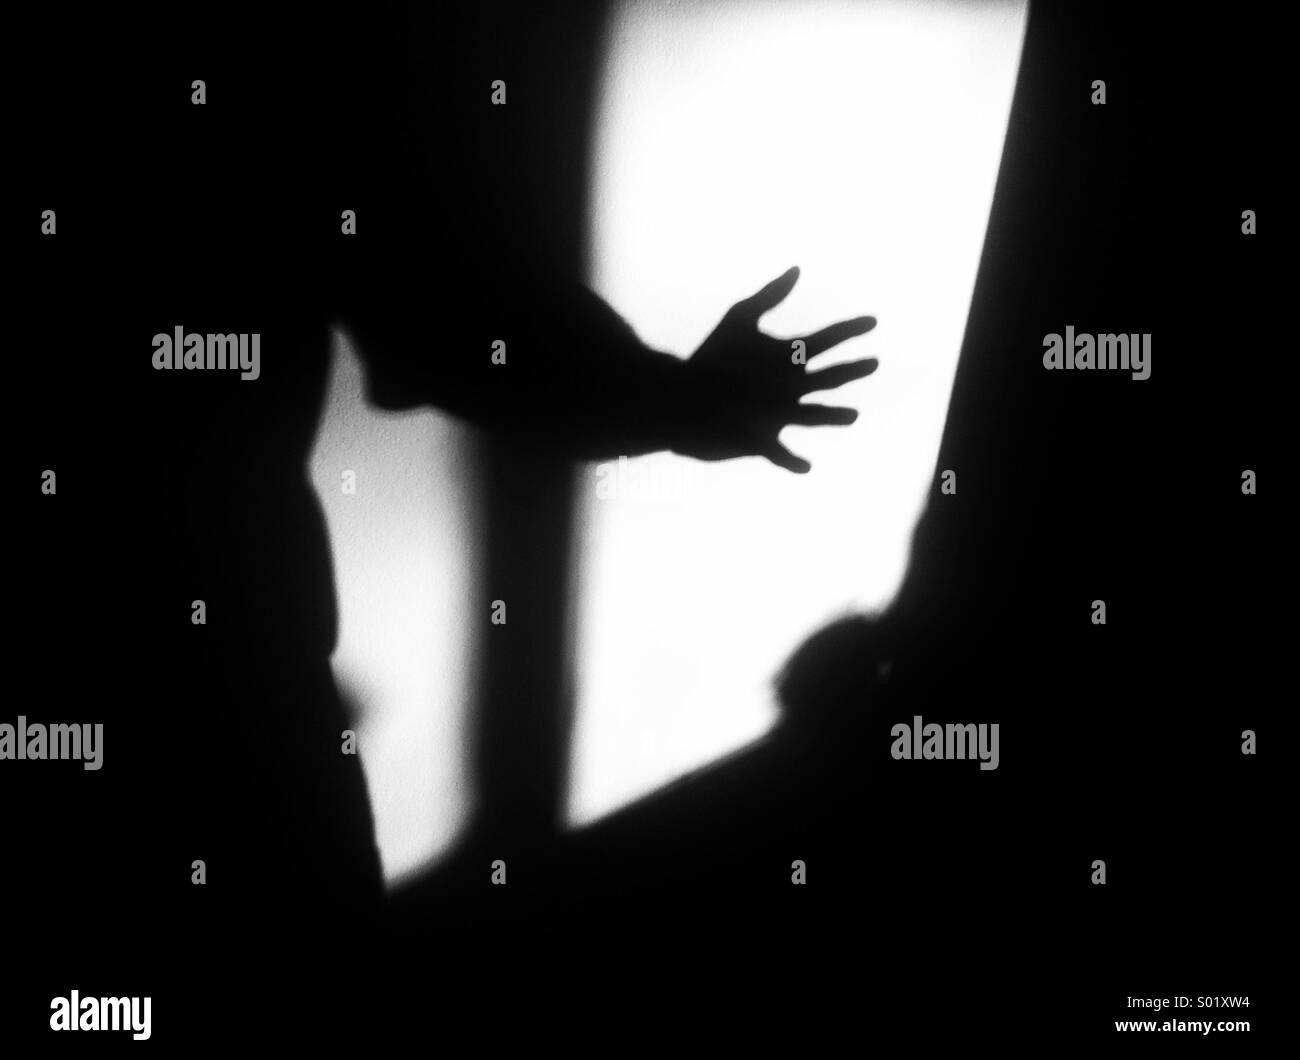 Shadow of hand against wall - Stock Image